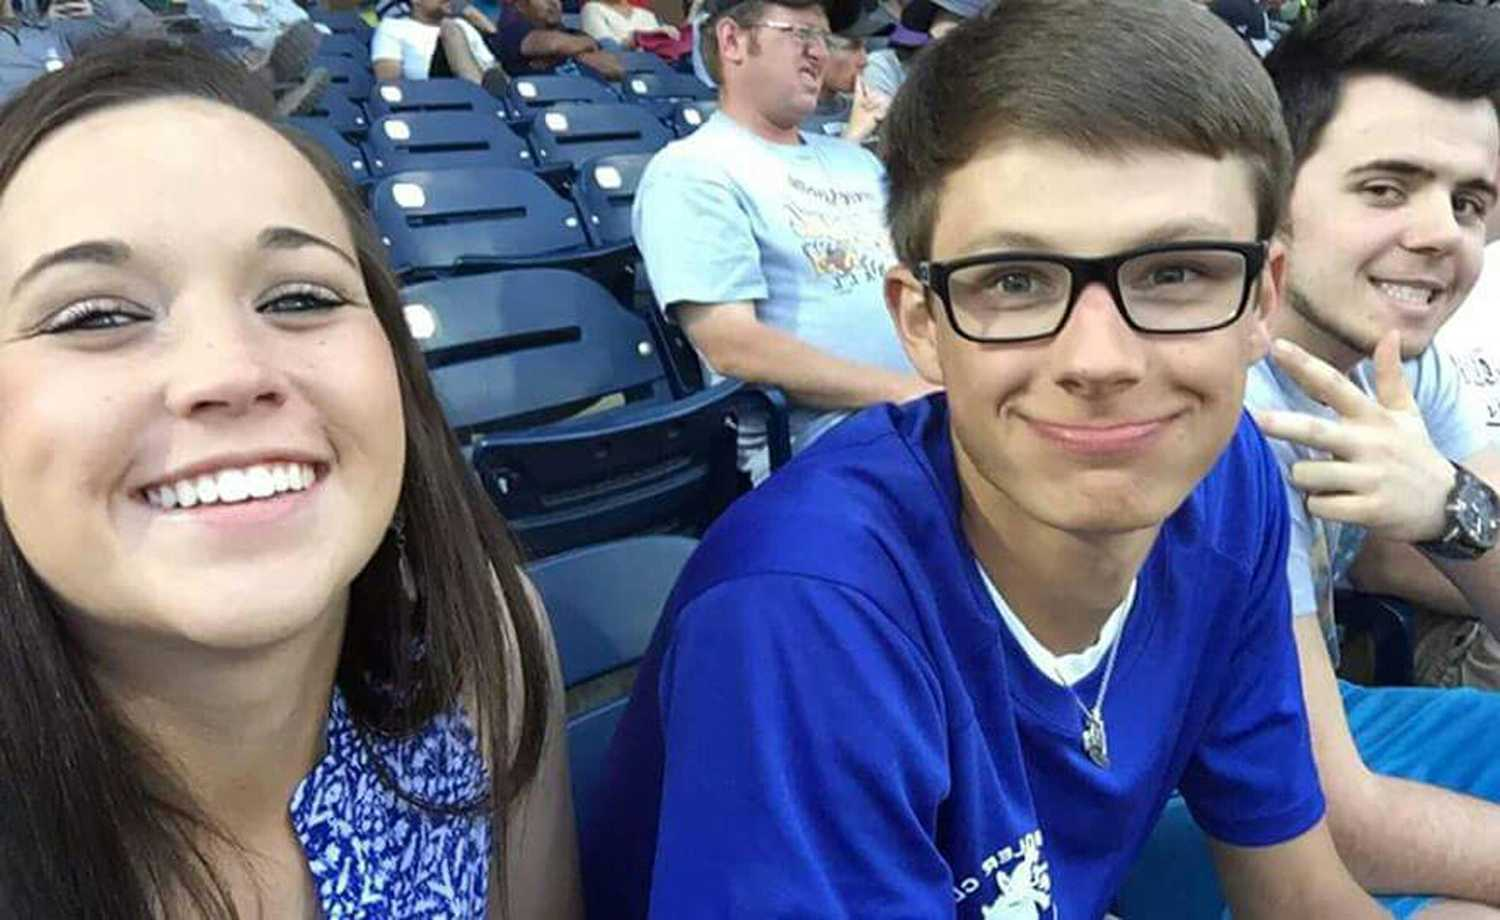 Ryan Tessaro, Courtney Turner and Marcel Zimmer enjoying an evening watching the Midland Rockhounds play.